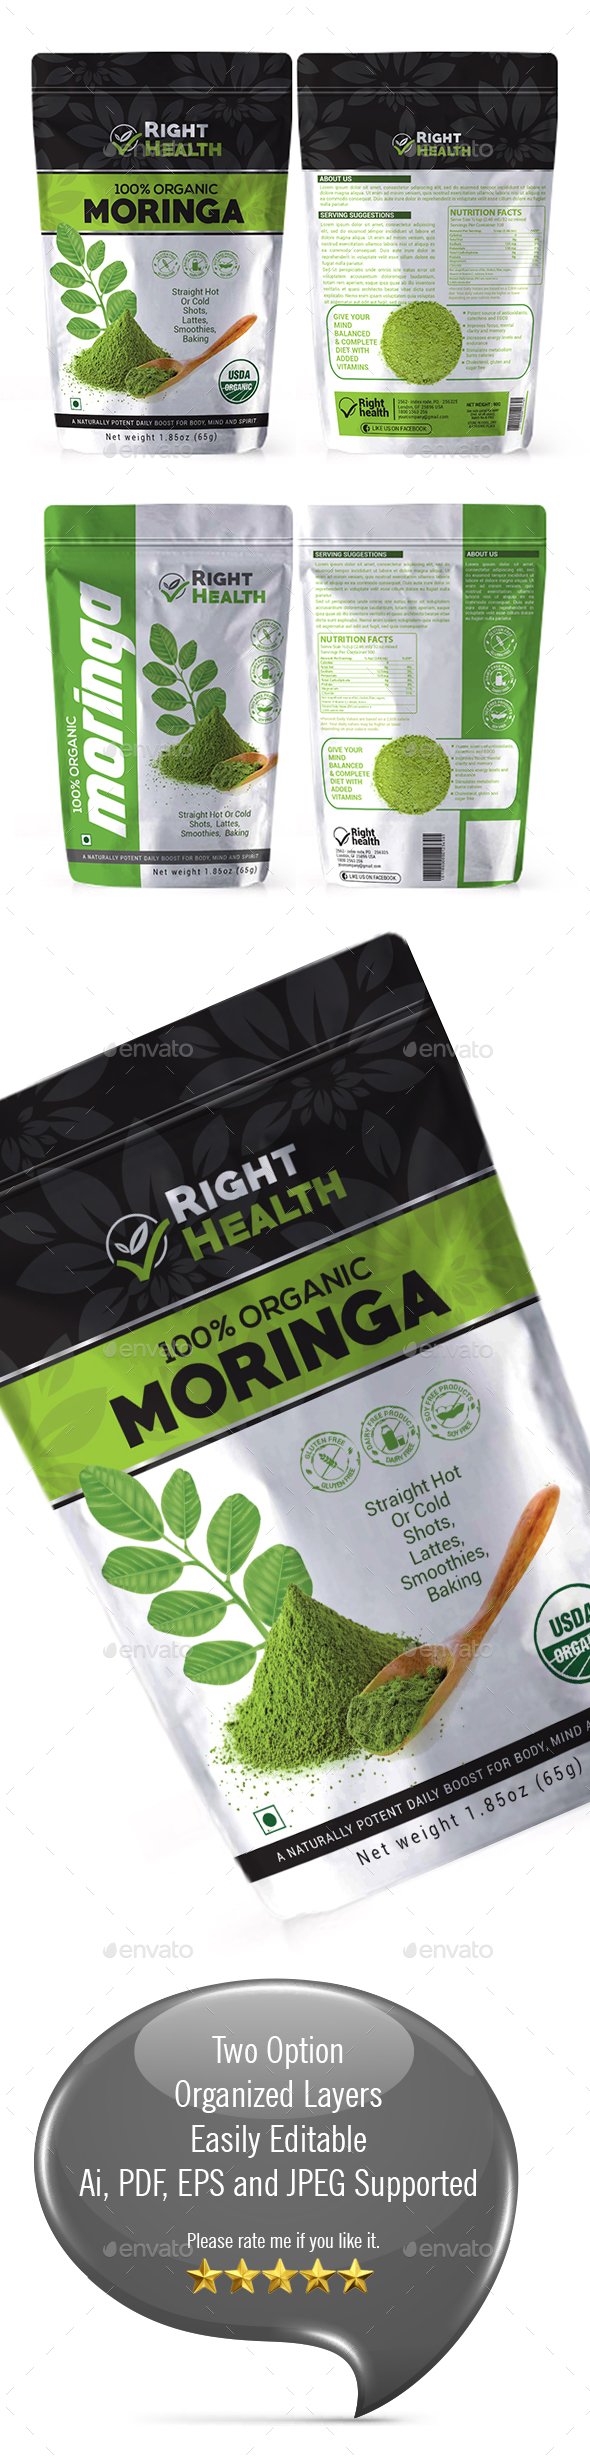 Moringa Powder Bag Packaging Template vol 1 - Packaging Print Templates